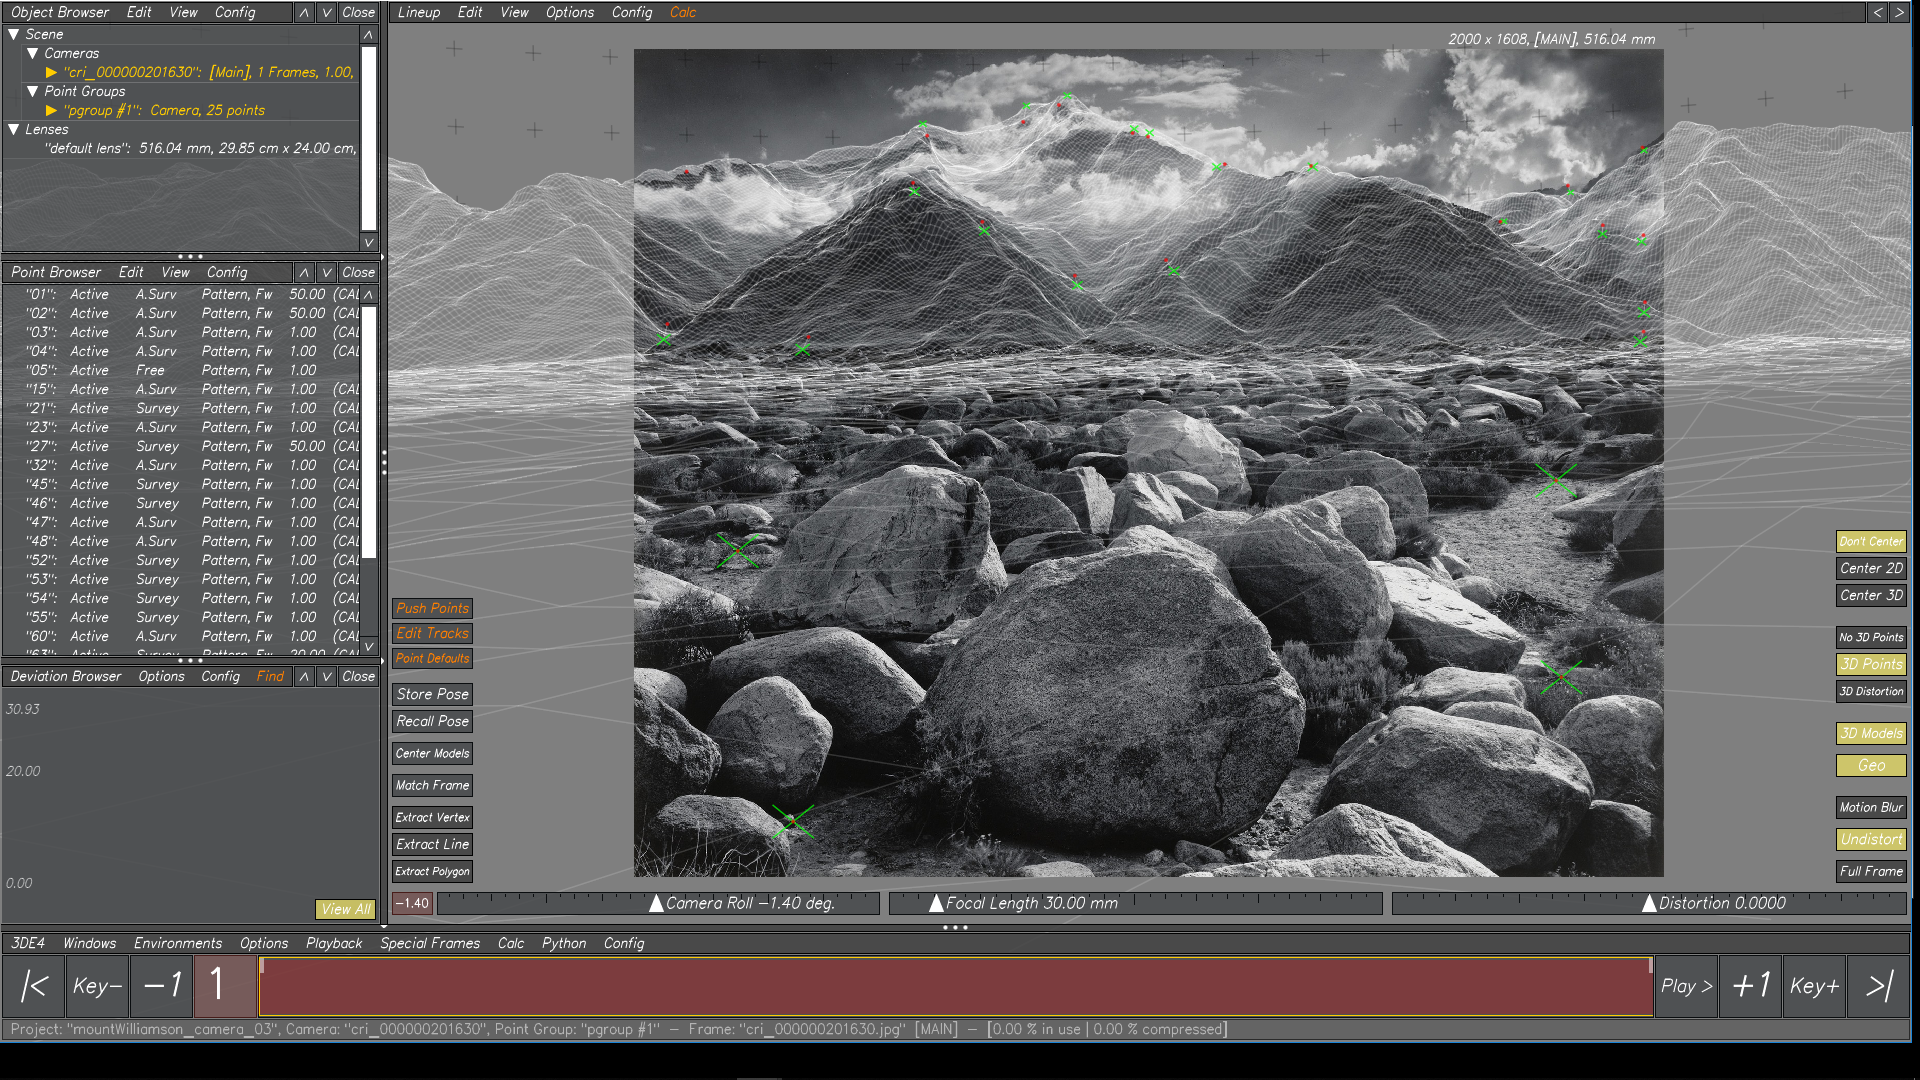 Houdini Heightfield lined up with focal length calculated in 3DEqualizer to Ansel Adams' Mount Williamson.